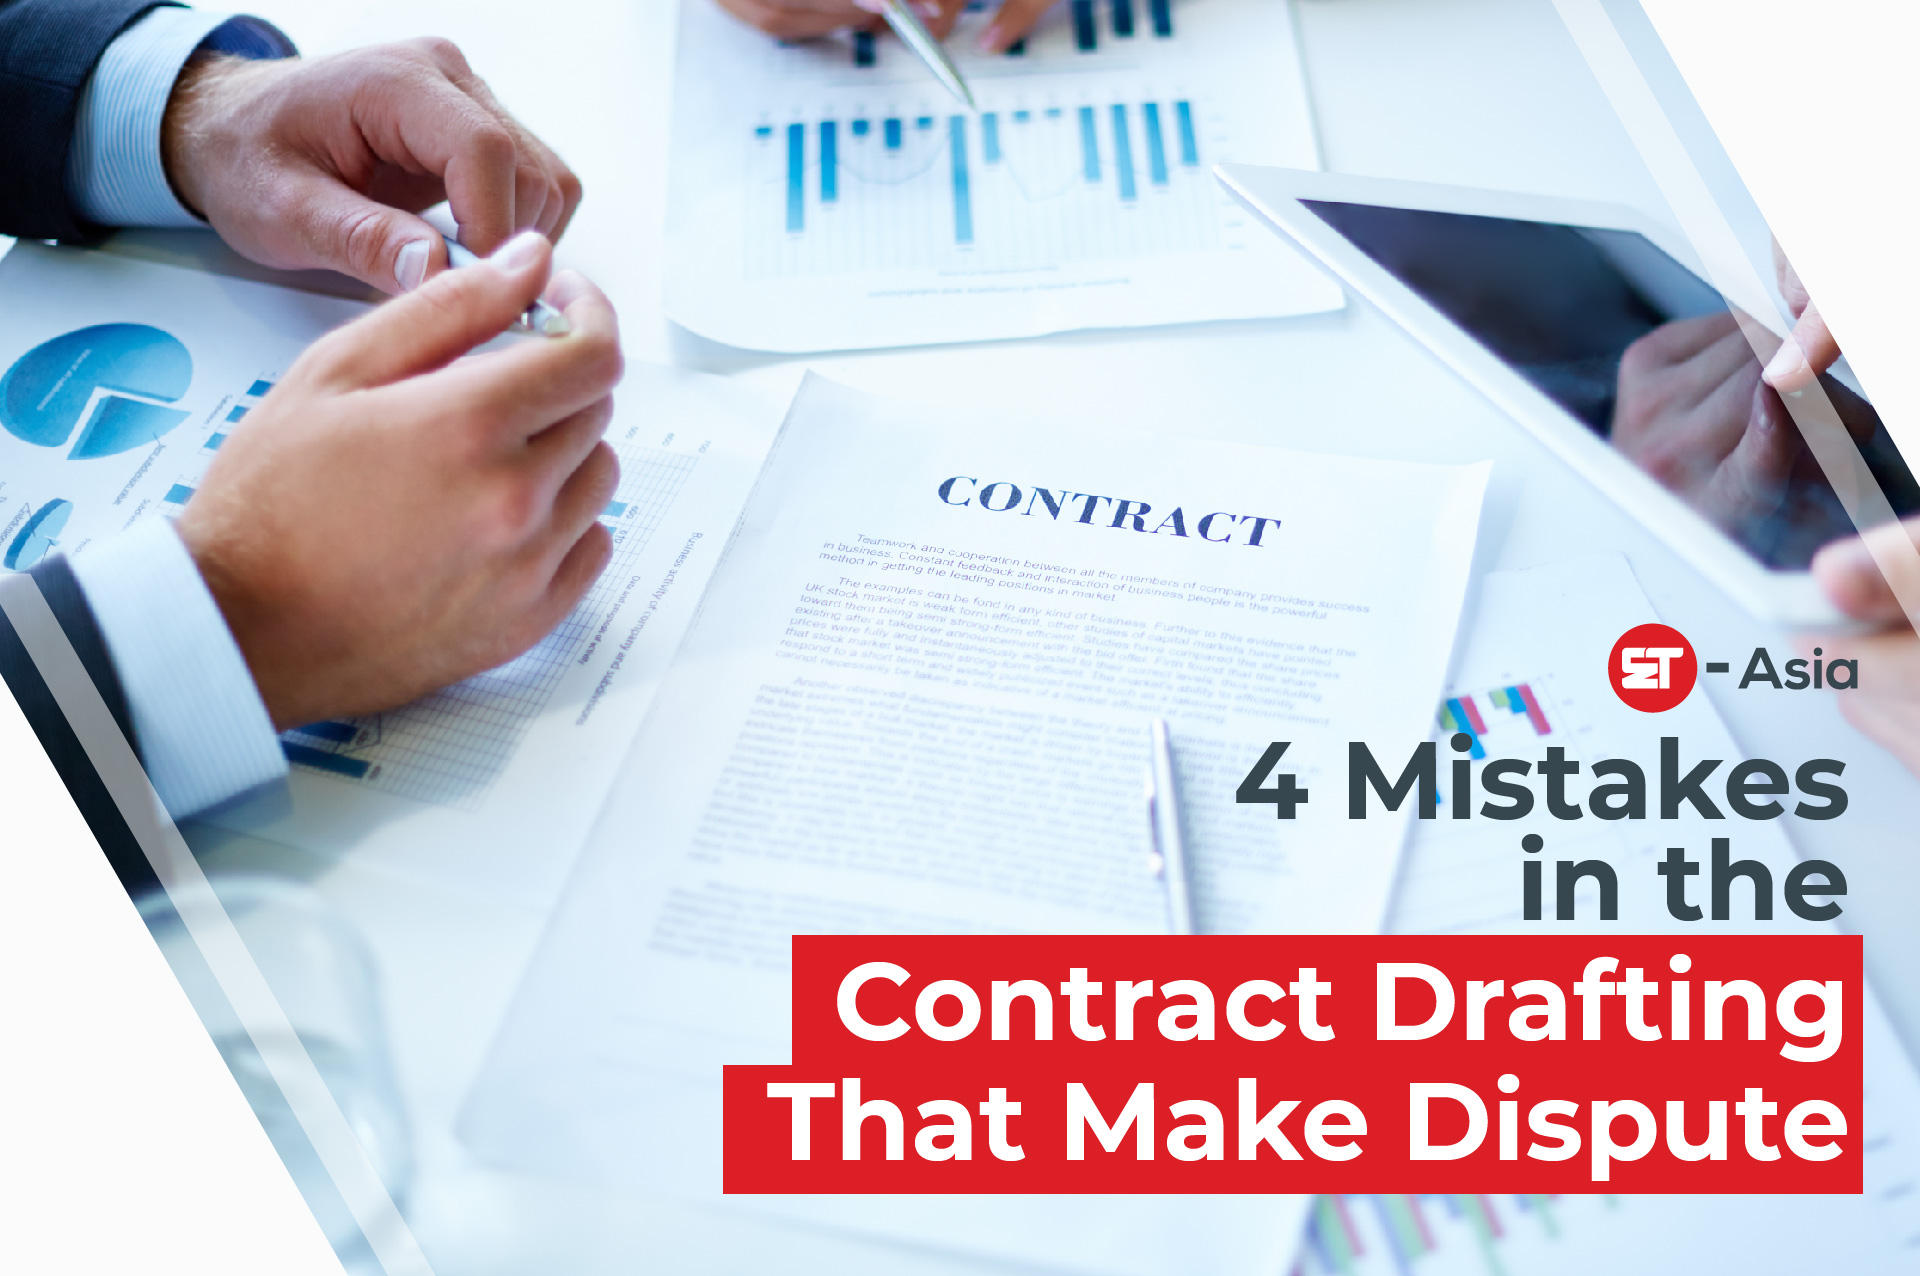 4 MISTAKES IN THE CONTRACT DRAFTING THAT MAKE DISPUTE